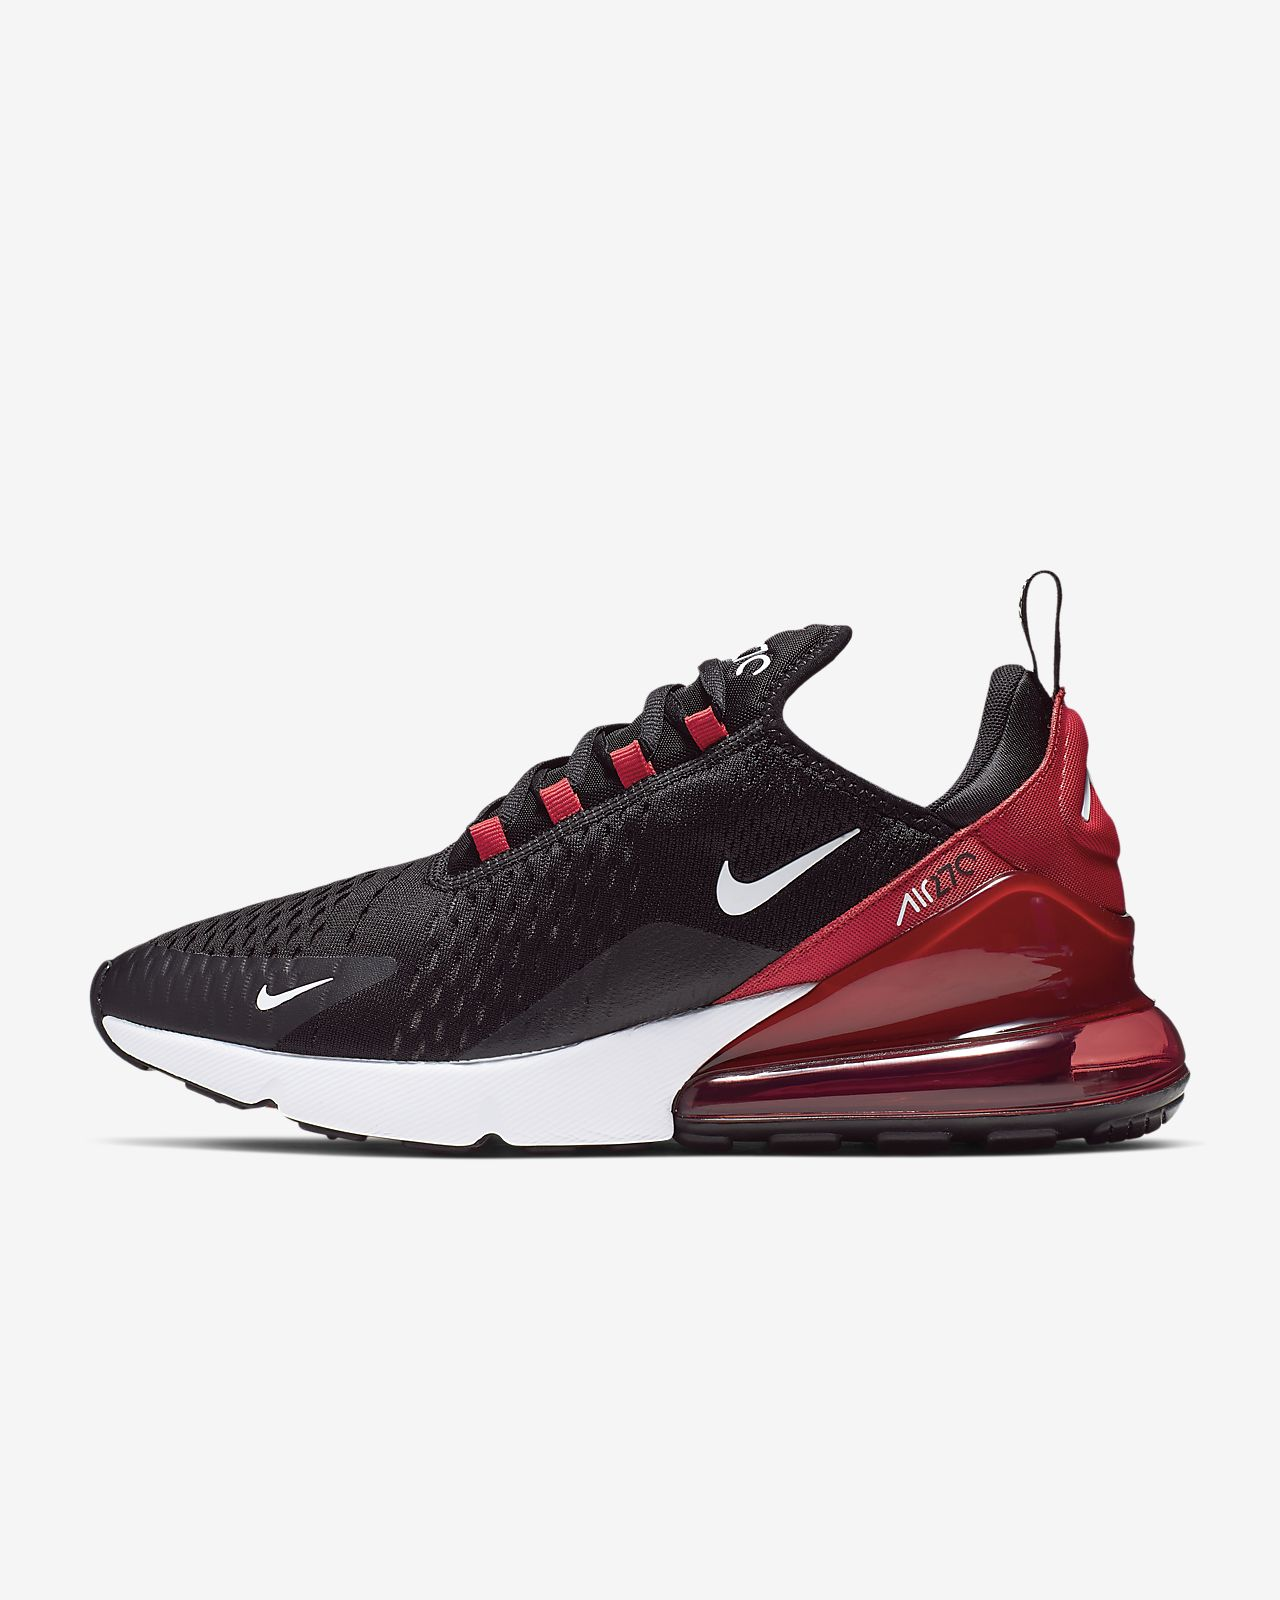 huge selection of 60c57 1537e ... Sko Nike Air Max 270 för män